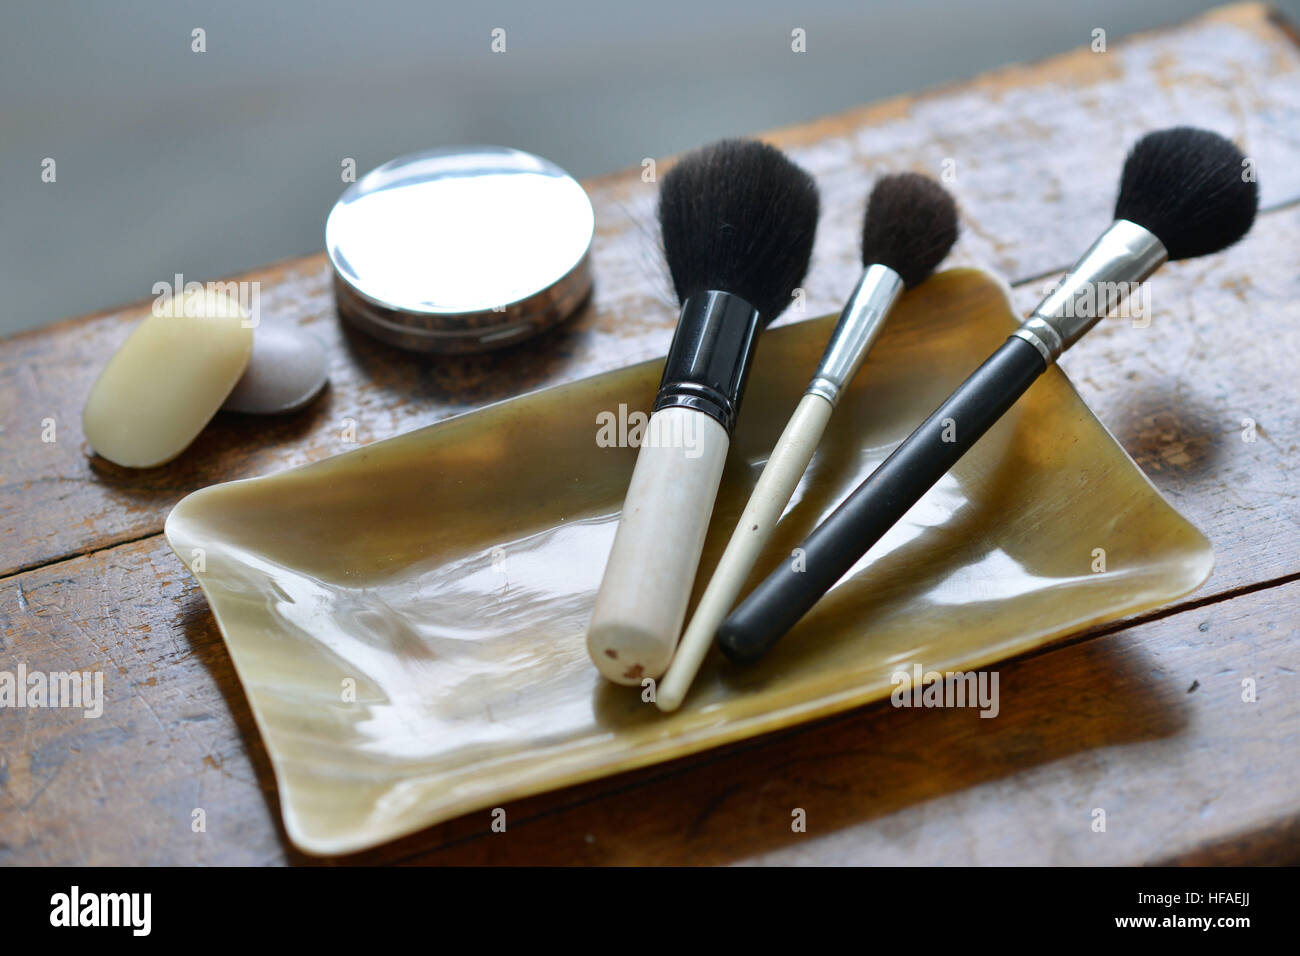 Makeup brushes in a horn container, luxury bathroom - Stock Image